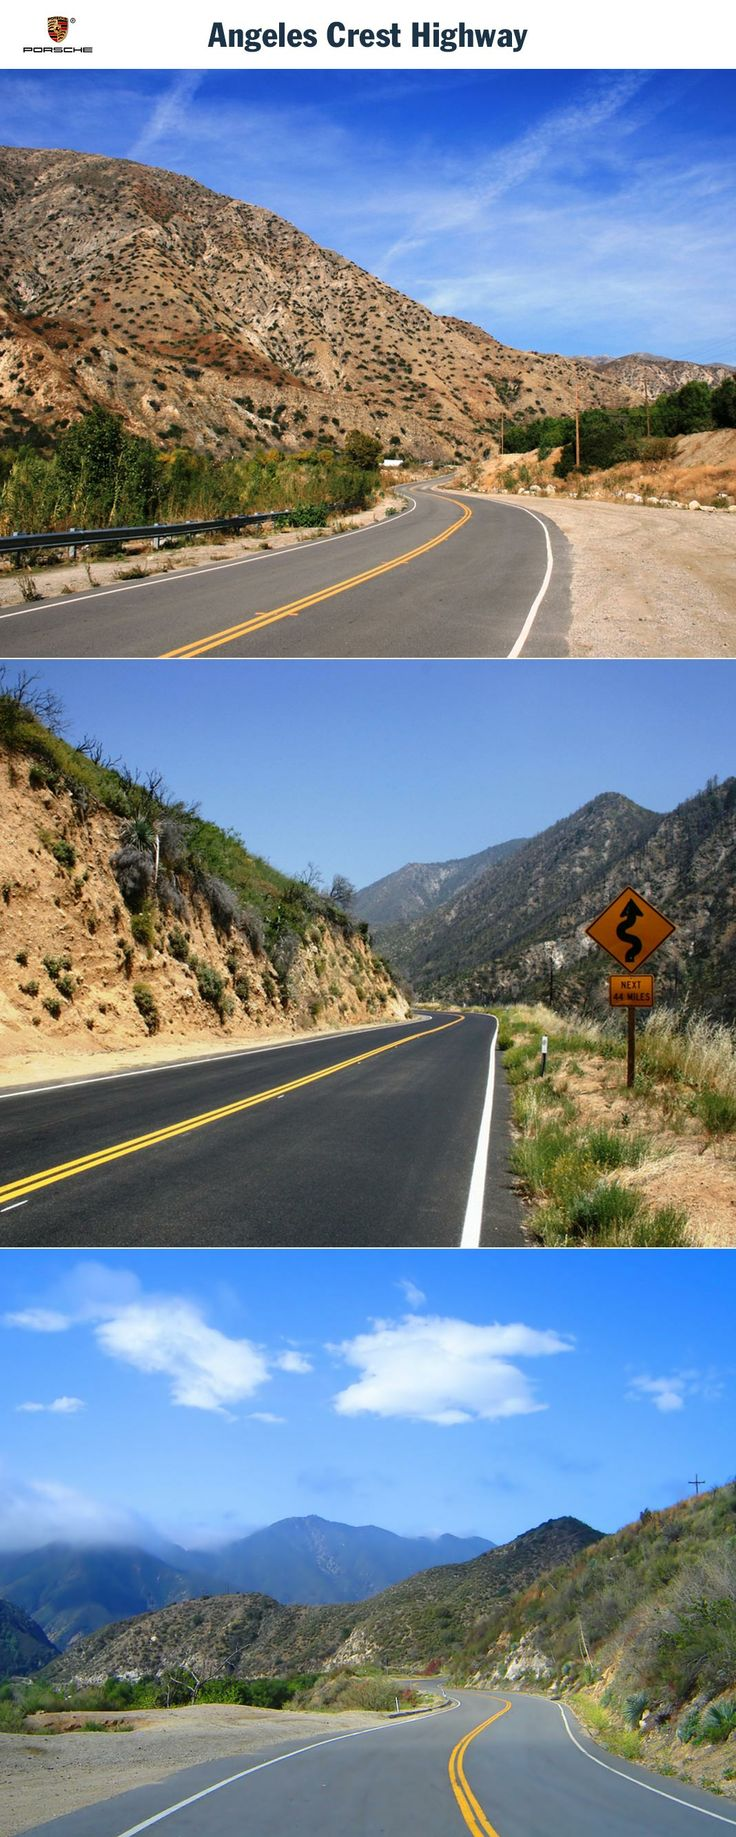 Angeles Crest Highway, USA. Driving along Magnus Walker's home route. Start: Los Angeles. Destination: Wrightwood. Driving time: Approx. 2 hours. Distance: Approx. 105 km (65 miles). Recommended travel time: March - September.   Learn more: http://link.porsche.com/gts/usa1